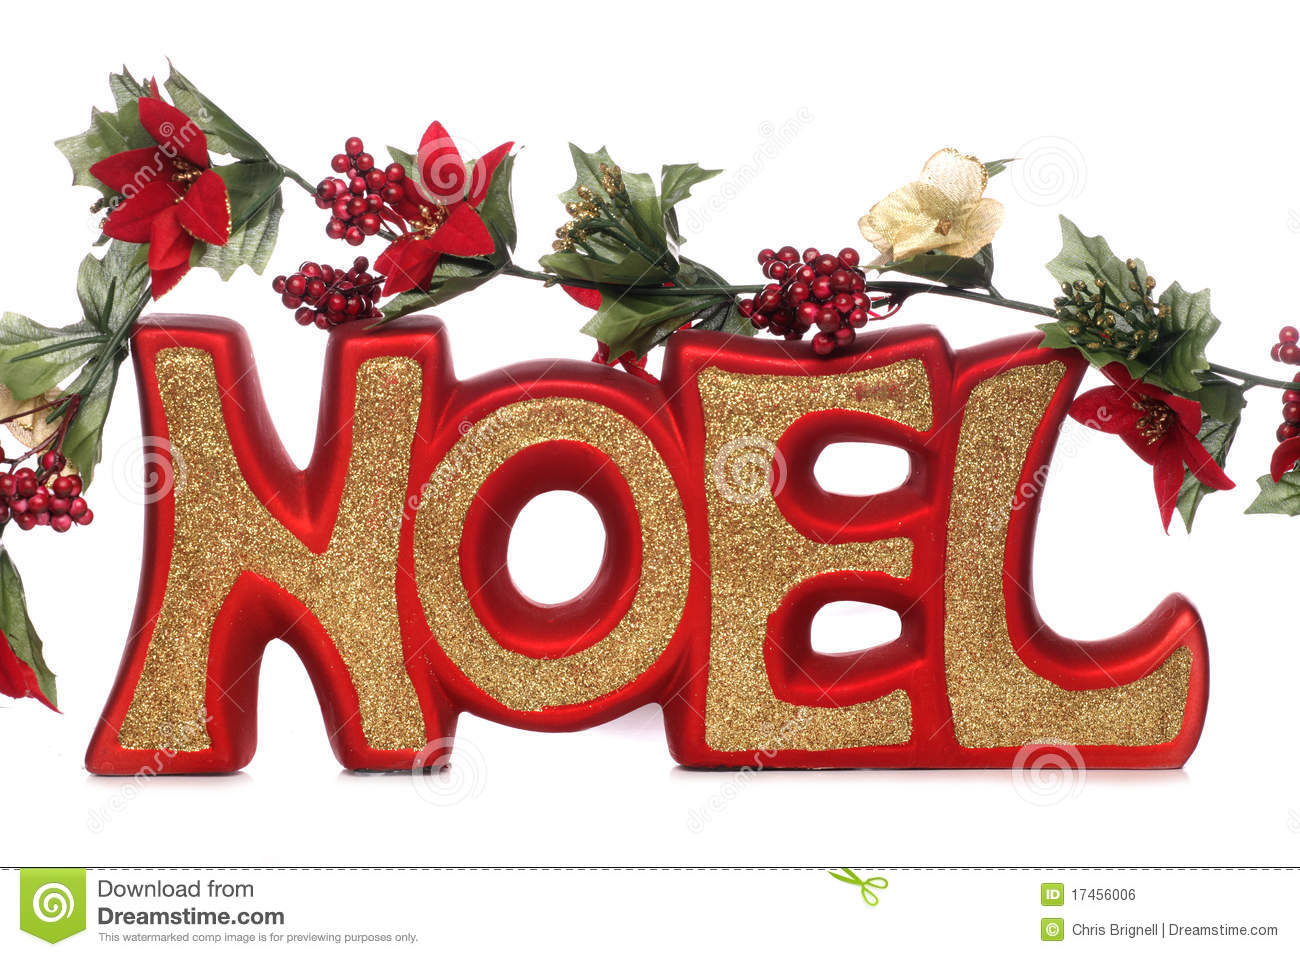 Fabuleux Noel Christmas Decoration Royalty Free Stock Image - Image: 17456006 XB55